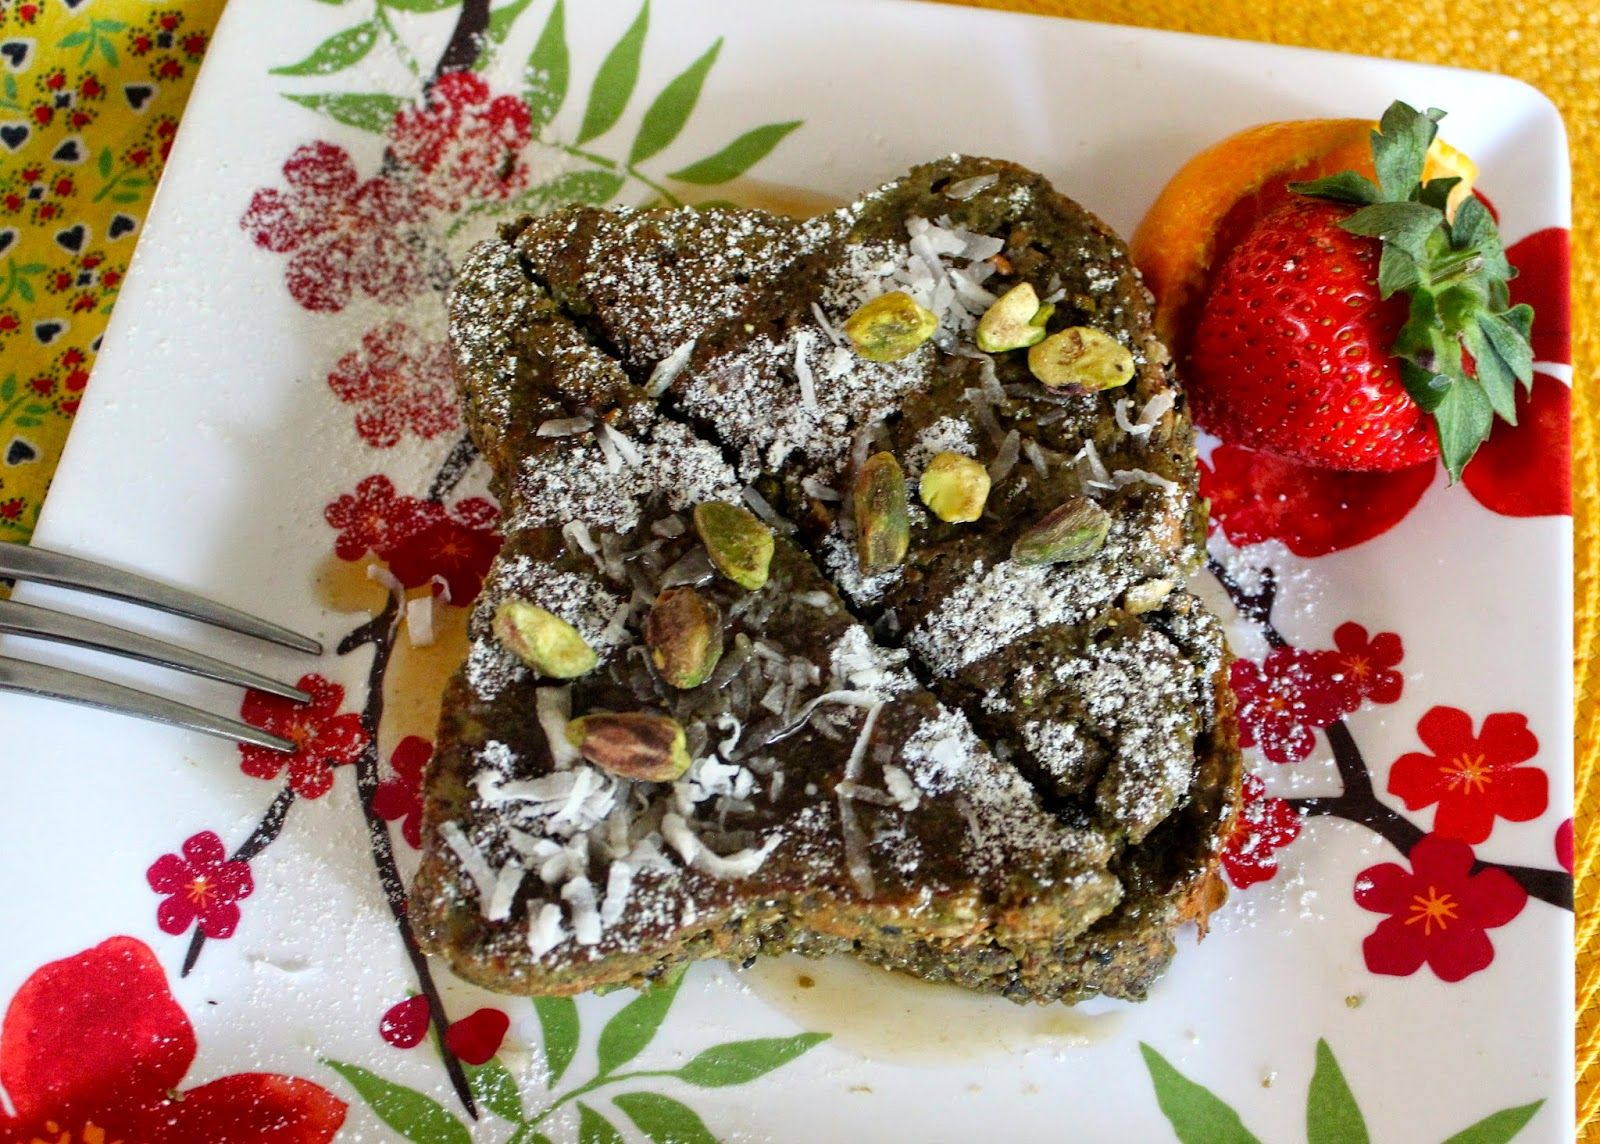 Hungry Vegan: My Great, Big, Yummy Breakfast: Pistachio-Crusted ...